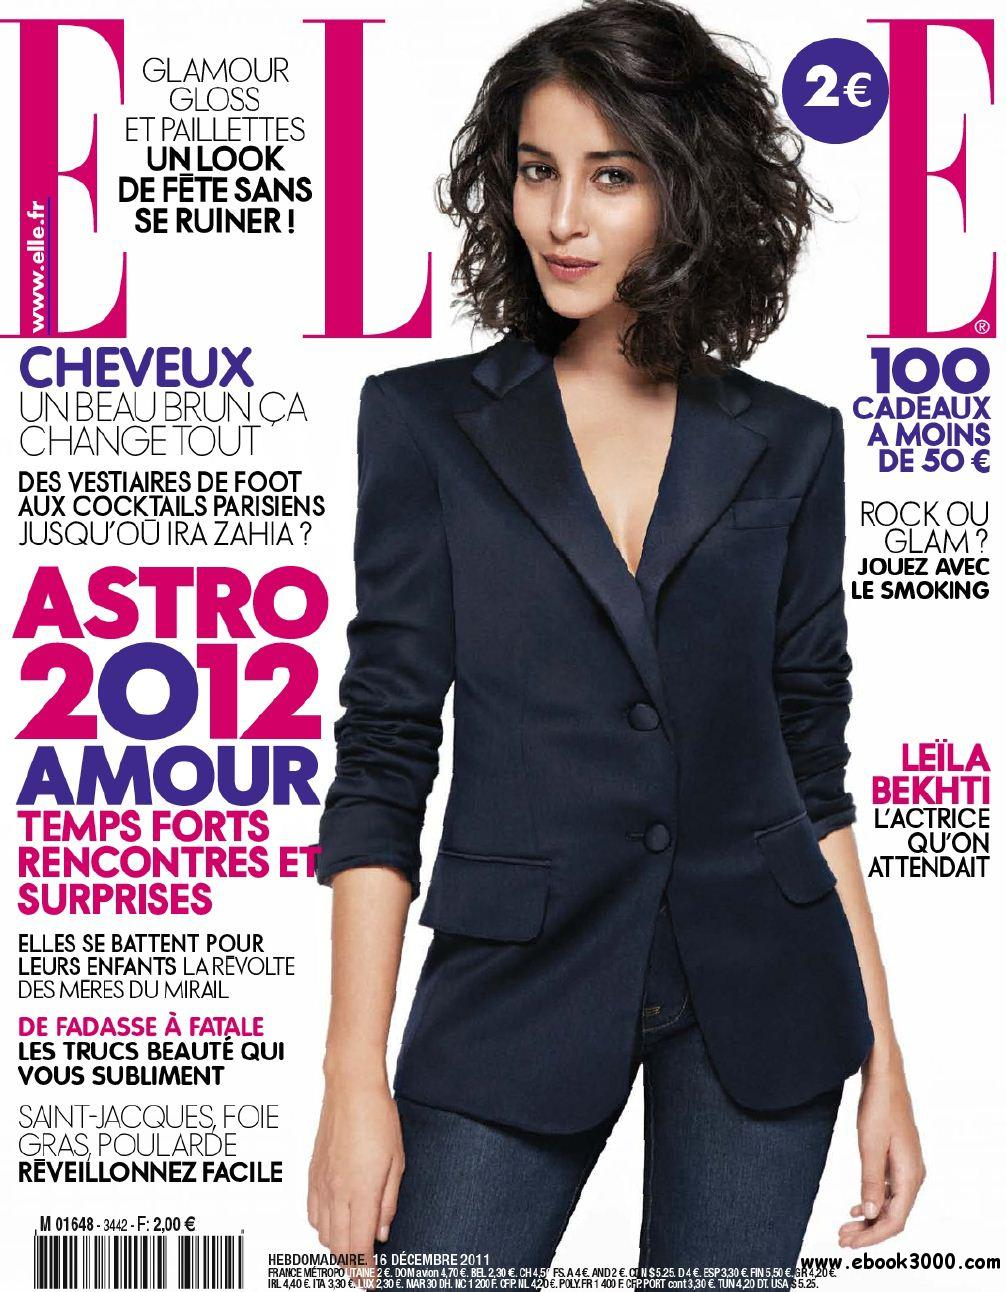 Elle N 3442 & Supplement Elle Paris du 16 au 23 Decembre 2011 free download